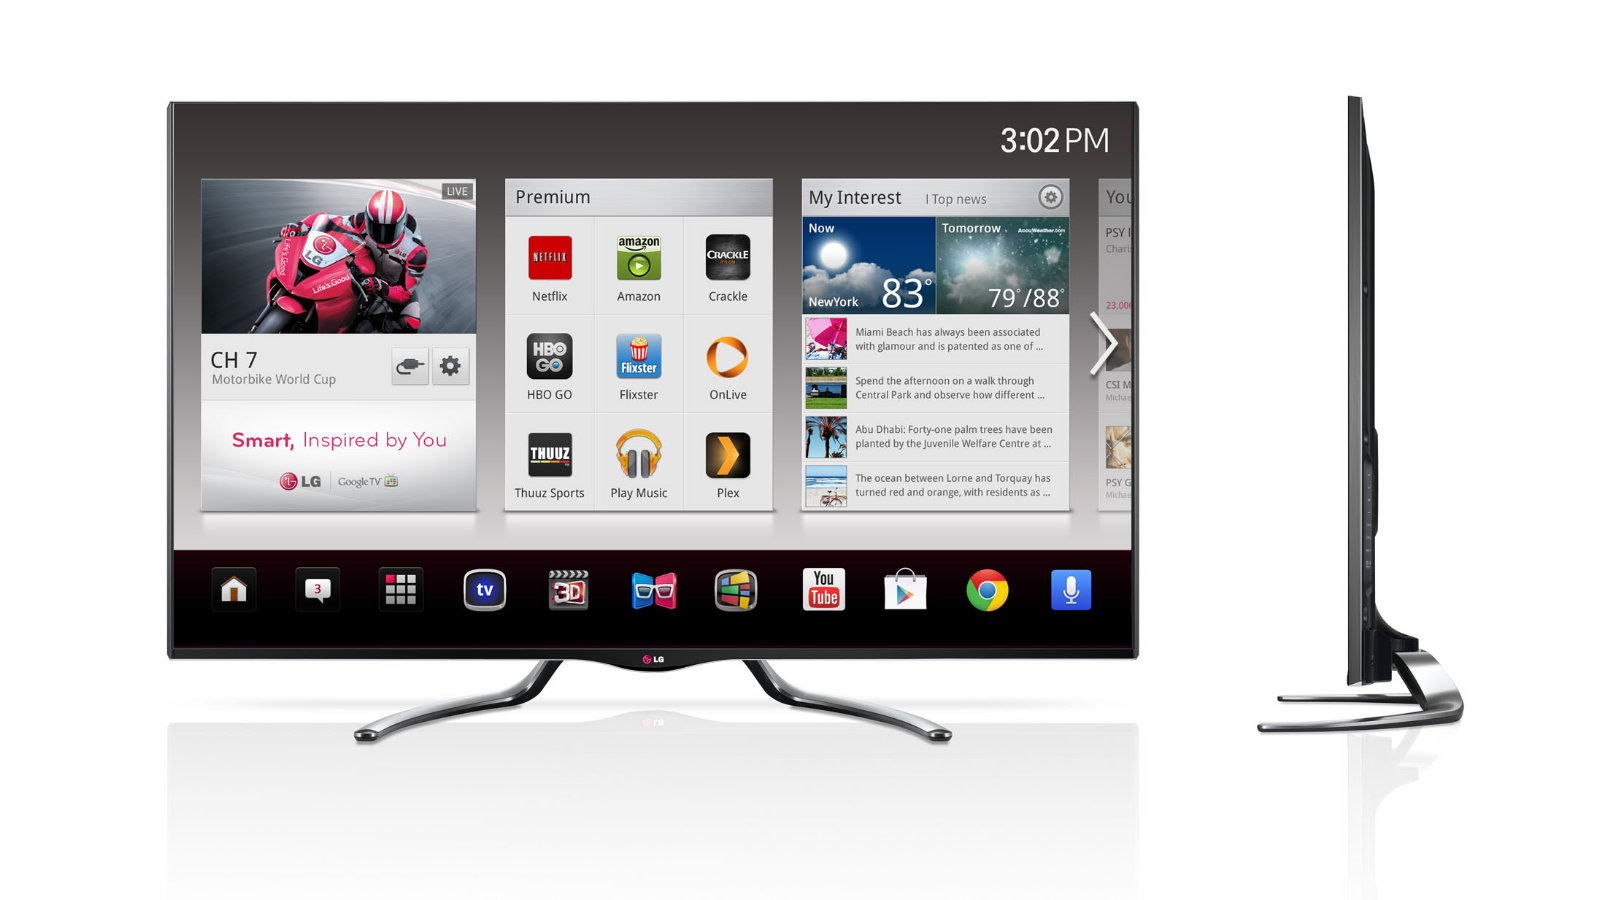 HuffPost: Social TV Needs an Upgrade: Your Move, Apple